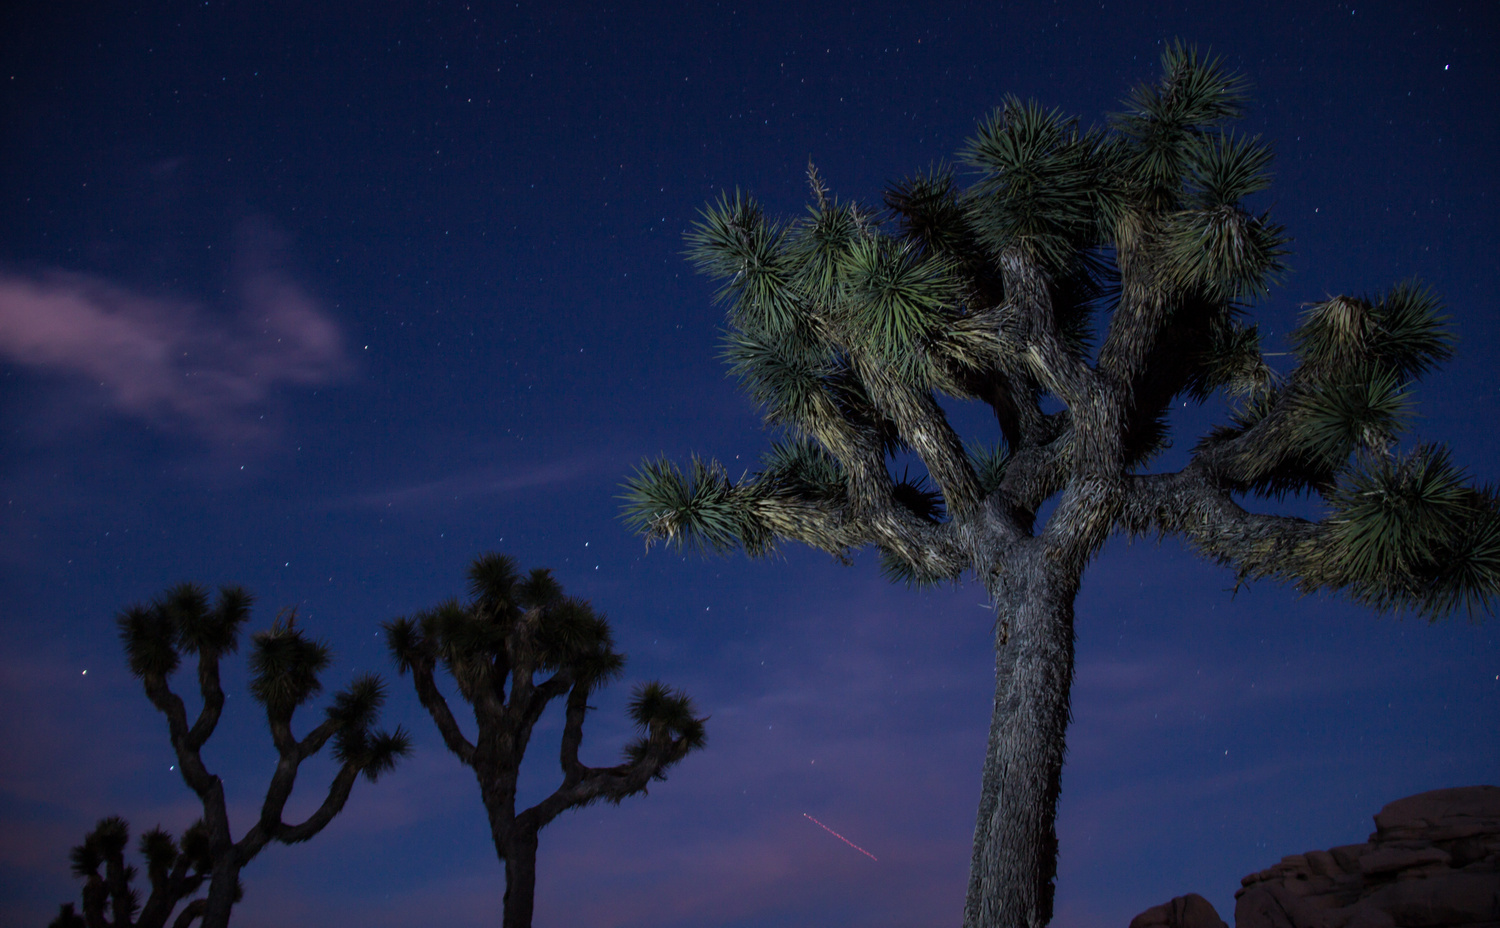 Joshua Trees by Paul Broadhead